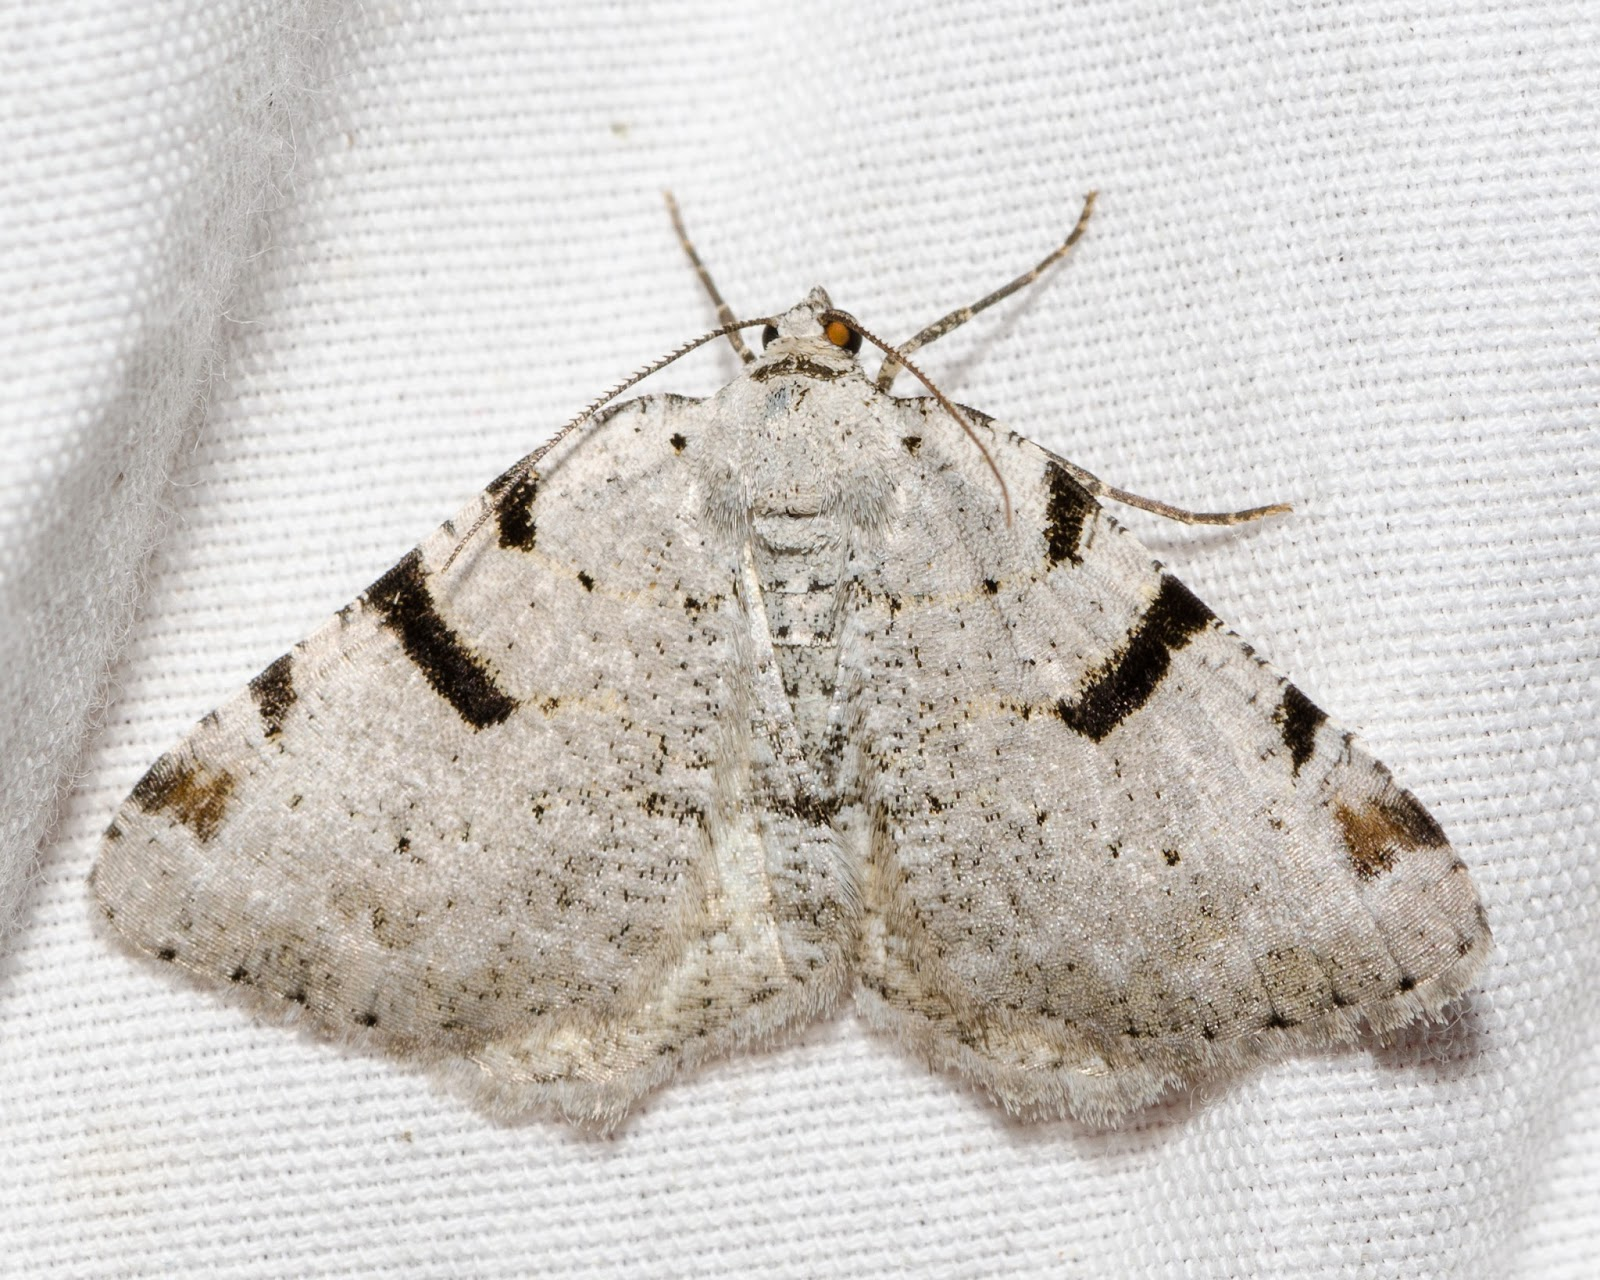 Barred Granite (Speranza subcessaria)